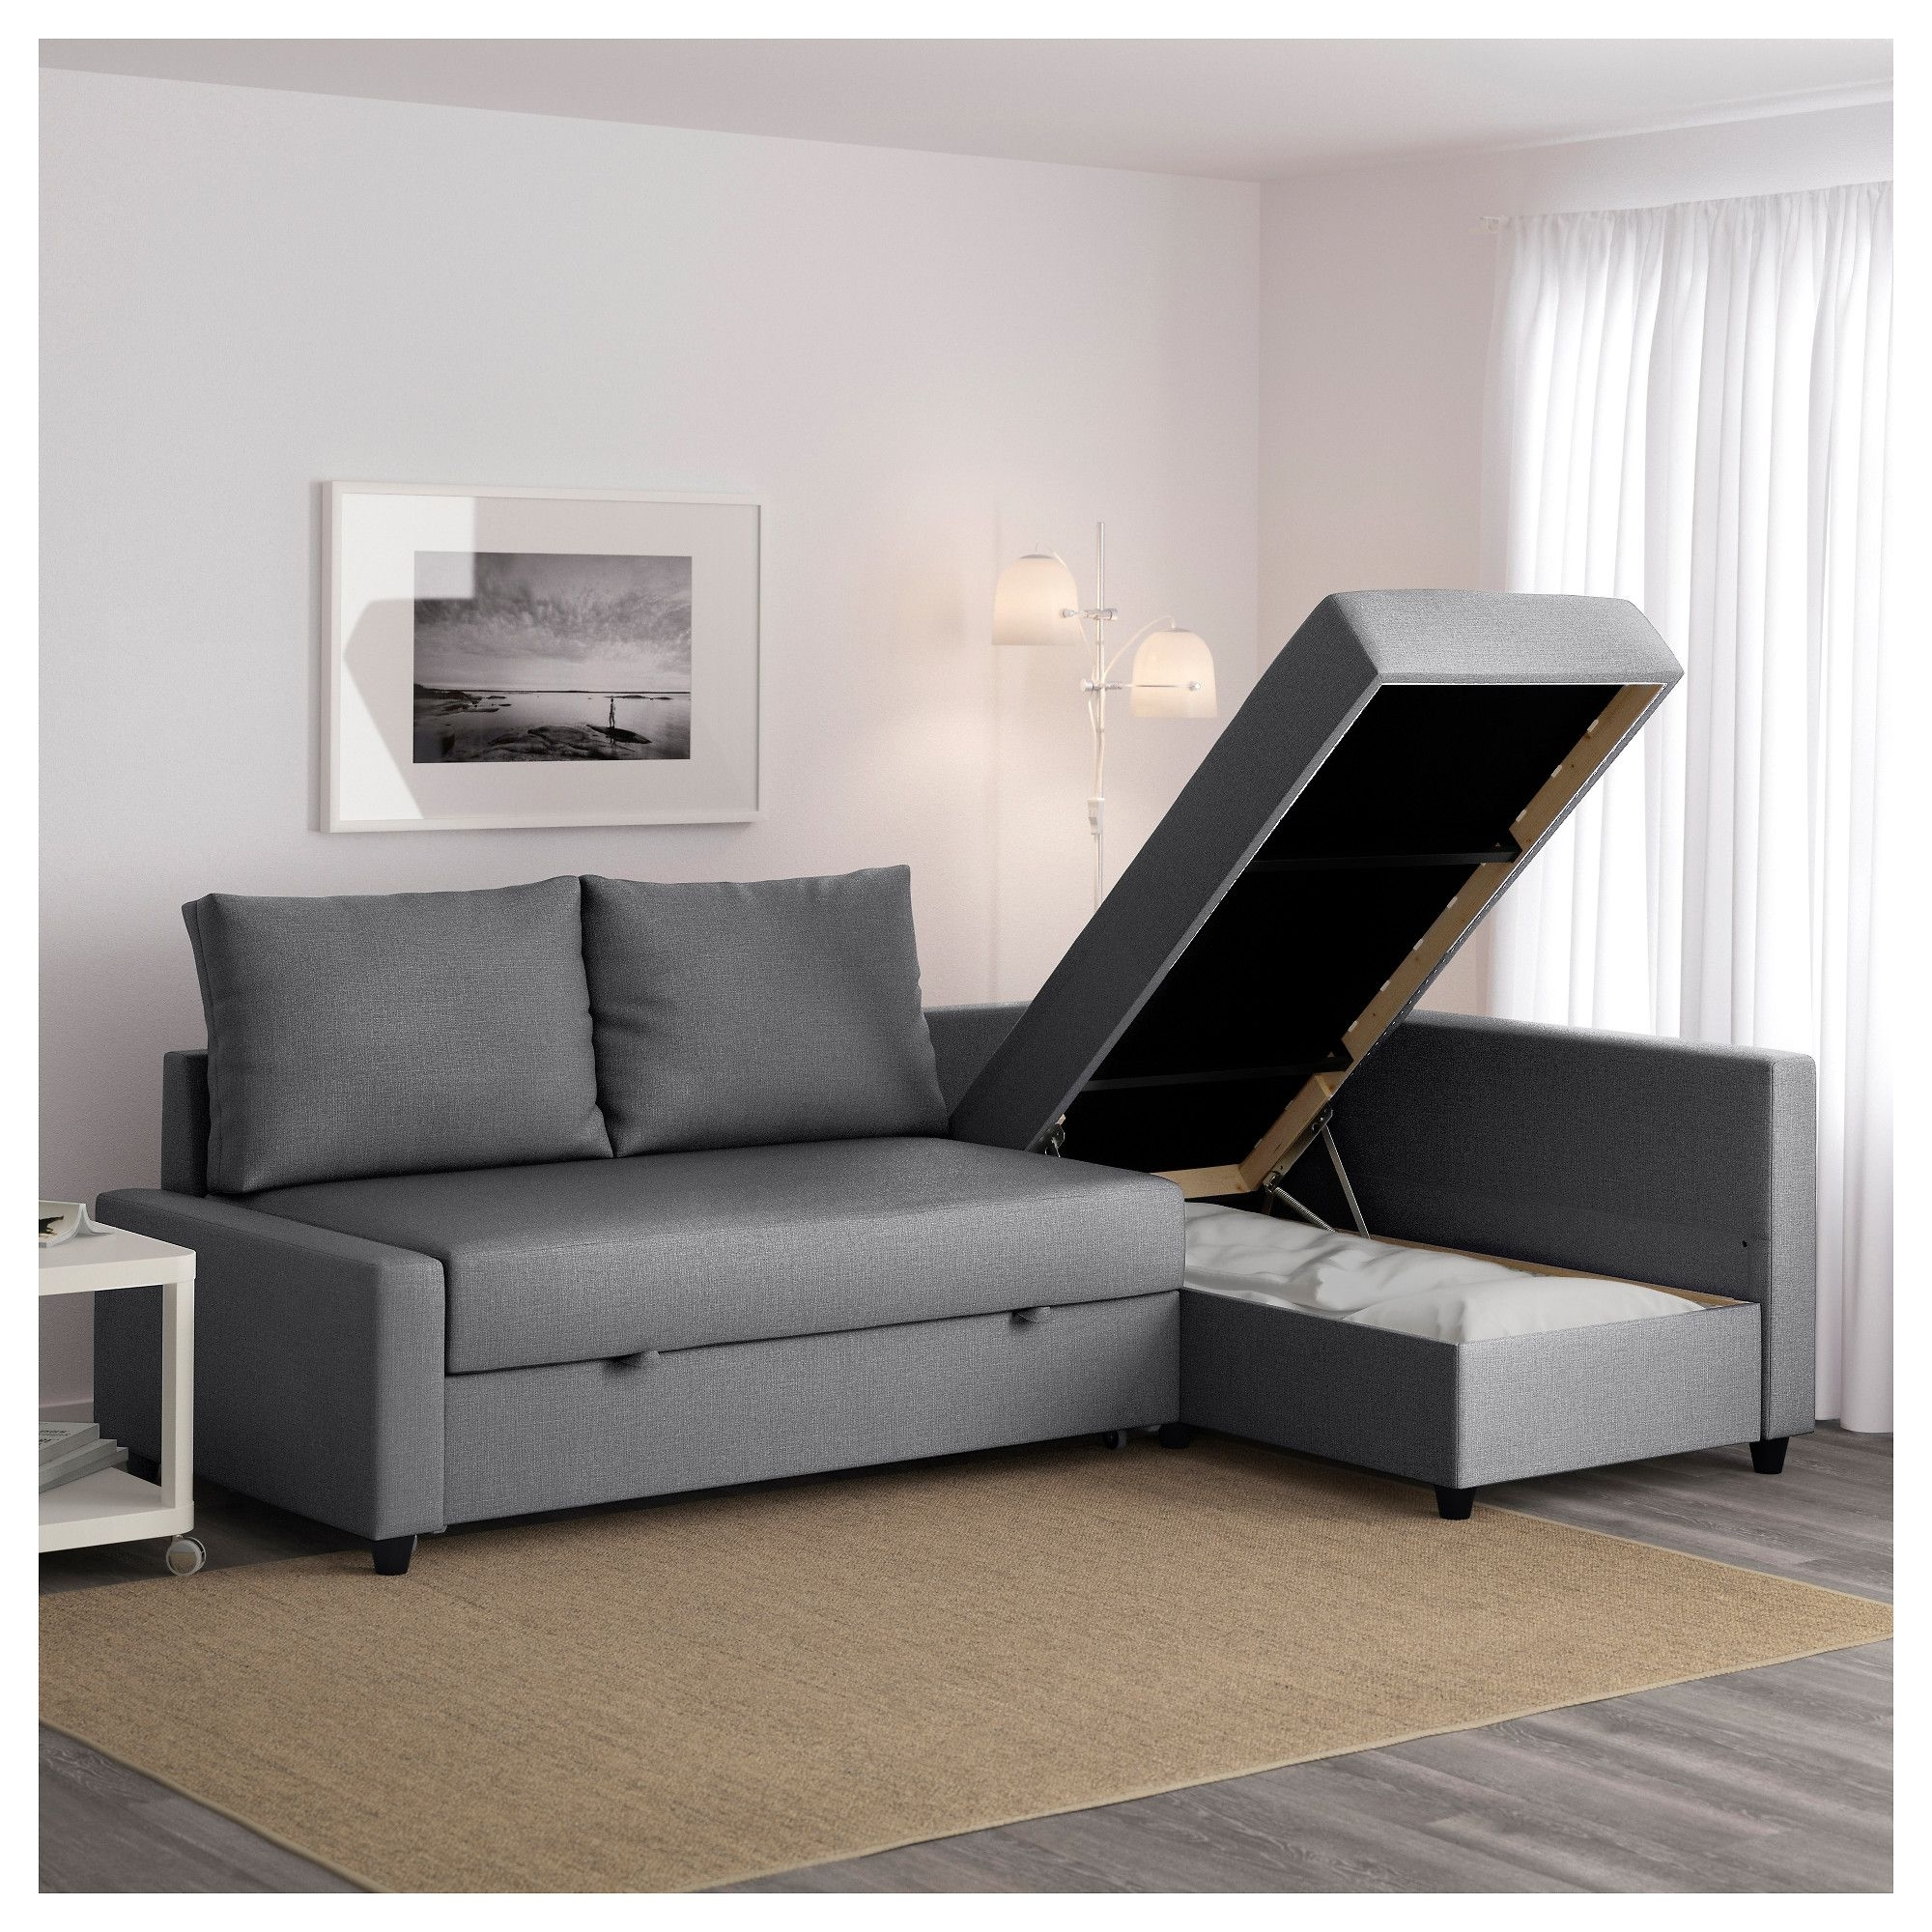 Most Recent Ikea Corner Sofas With Storage In Friheten Corner Sofa Bed With Storage Skiftebo Dark Grey (View 3 of 15)